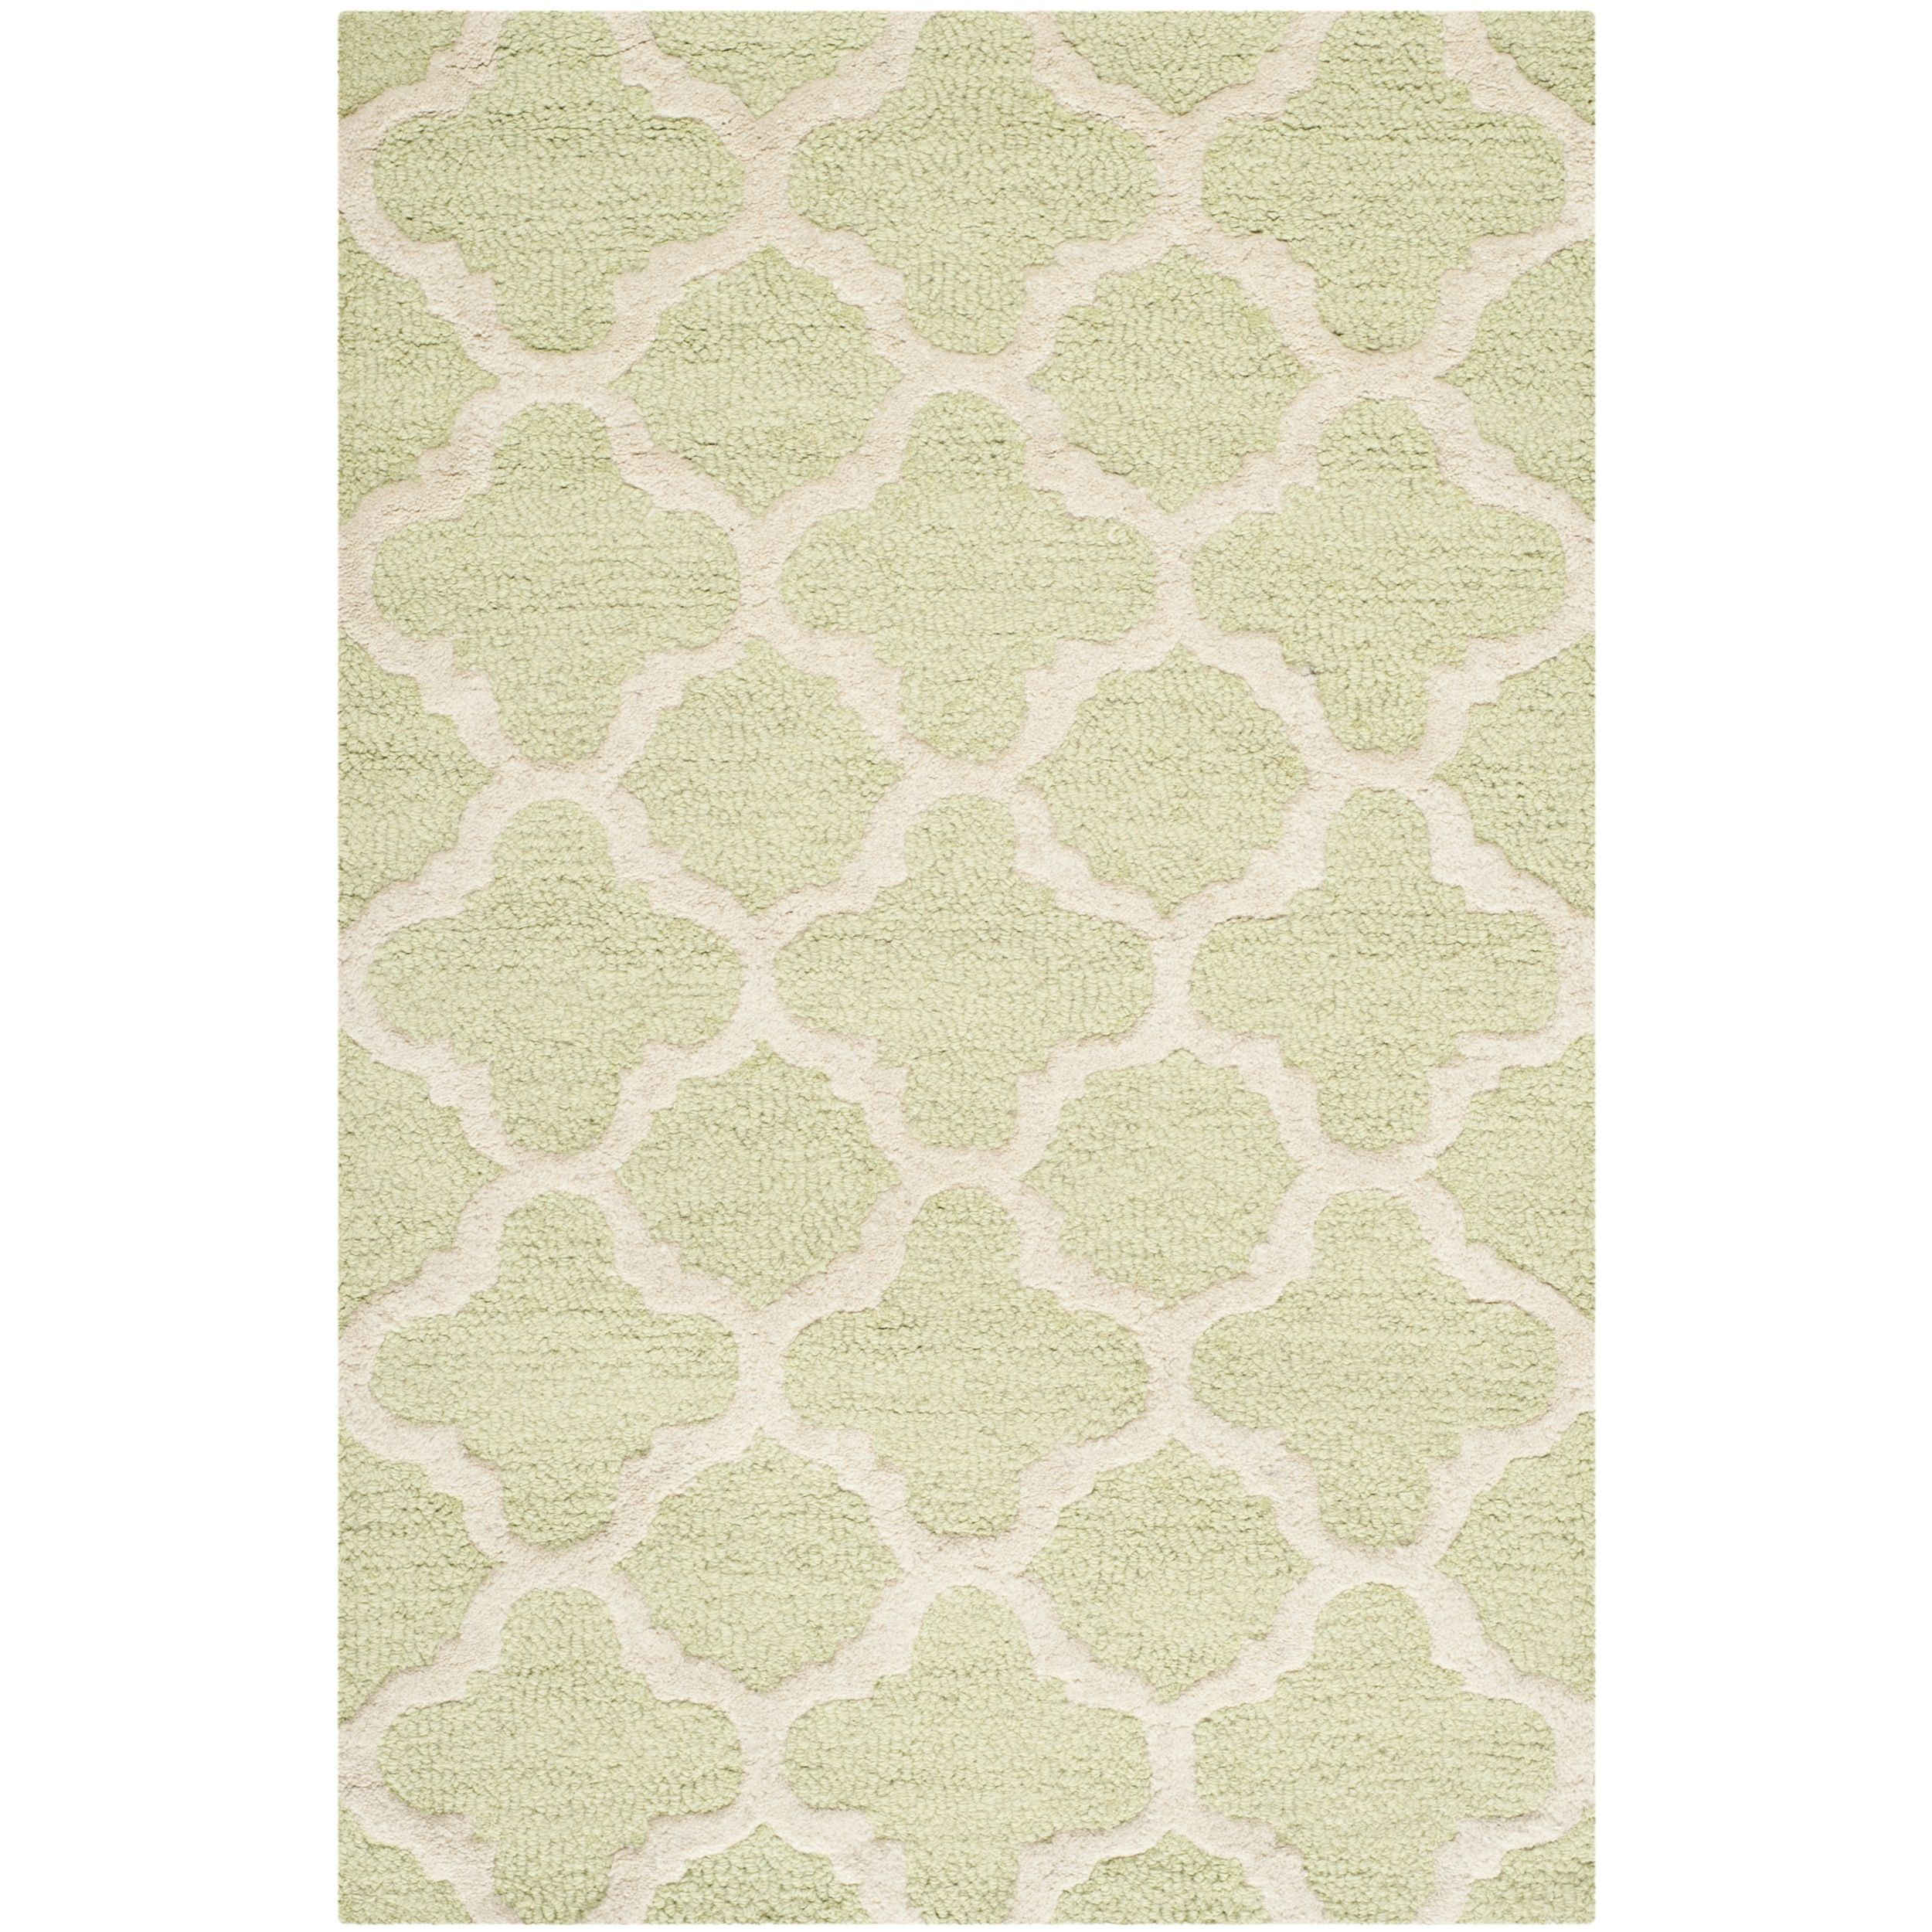 Safavieh Handmade Moroccan Cambridge Light Green Wool Accent Rug (2' x 3') (CAM130B-2) (Cotton, Trellis)